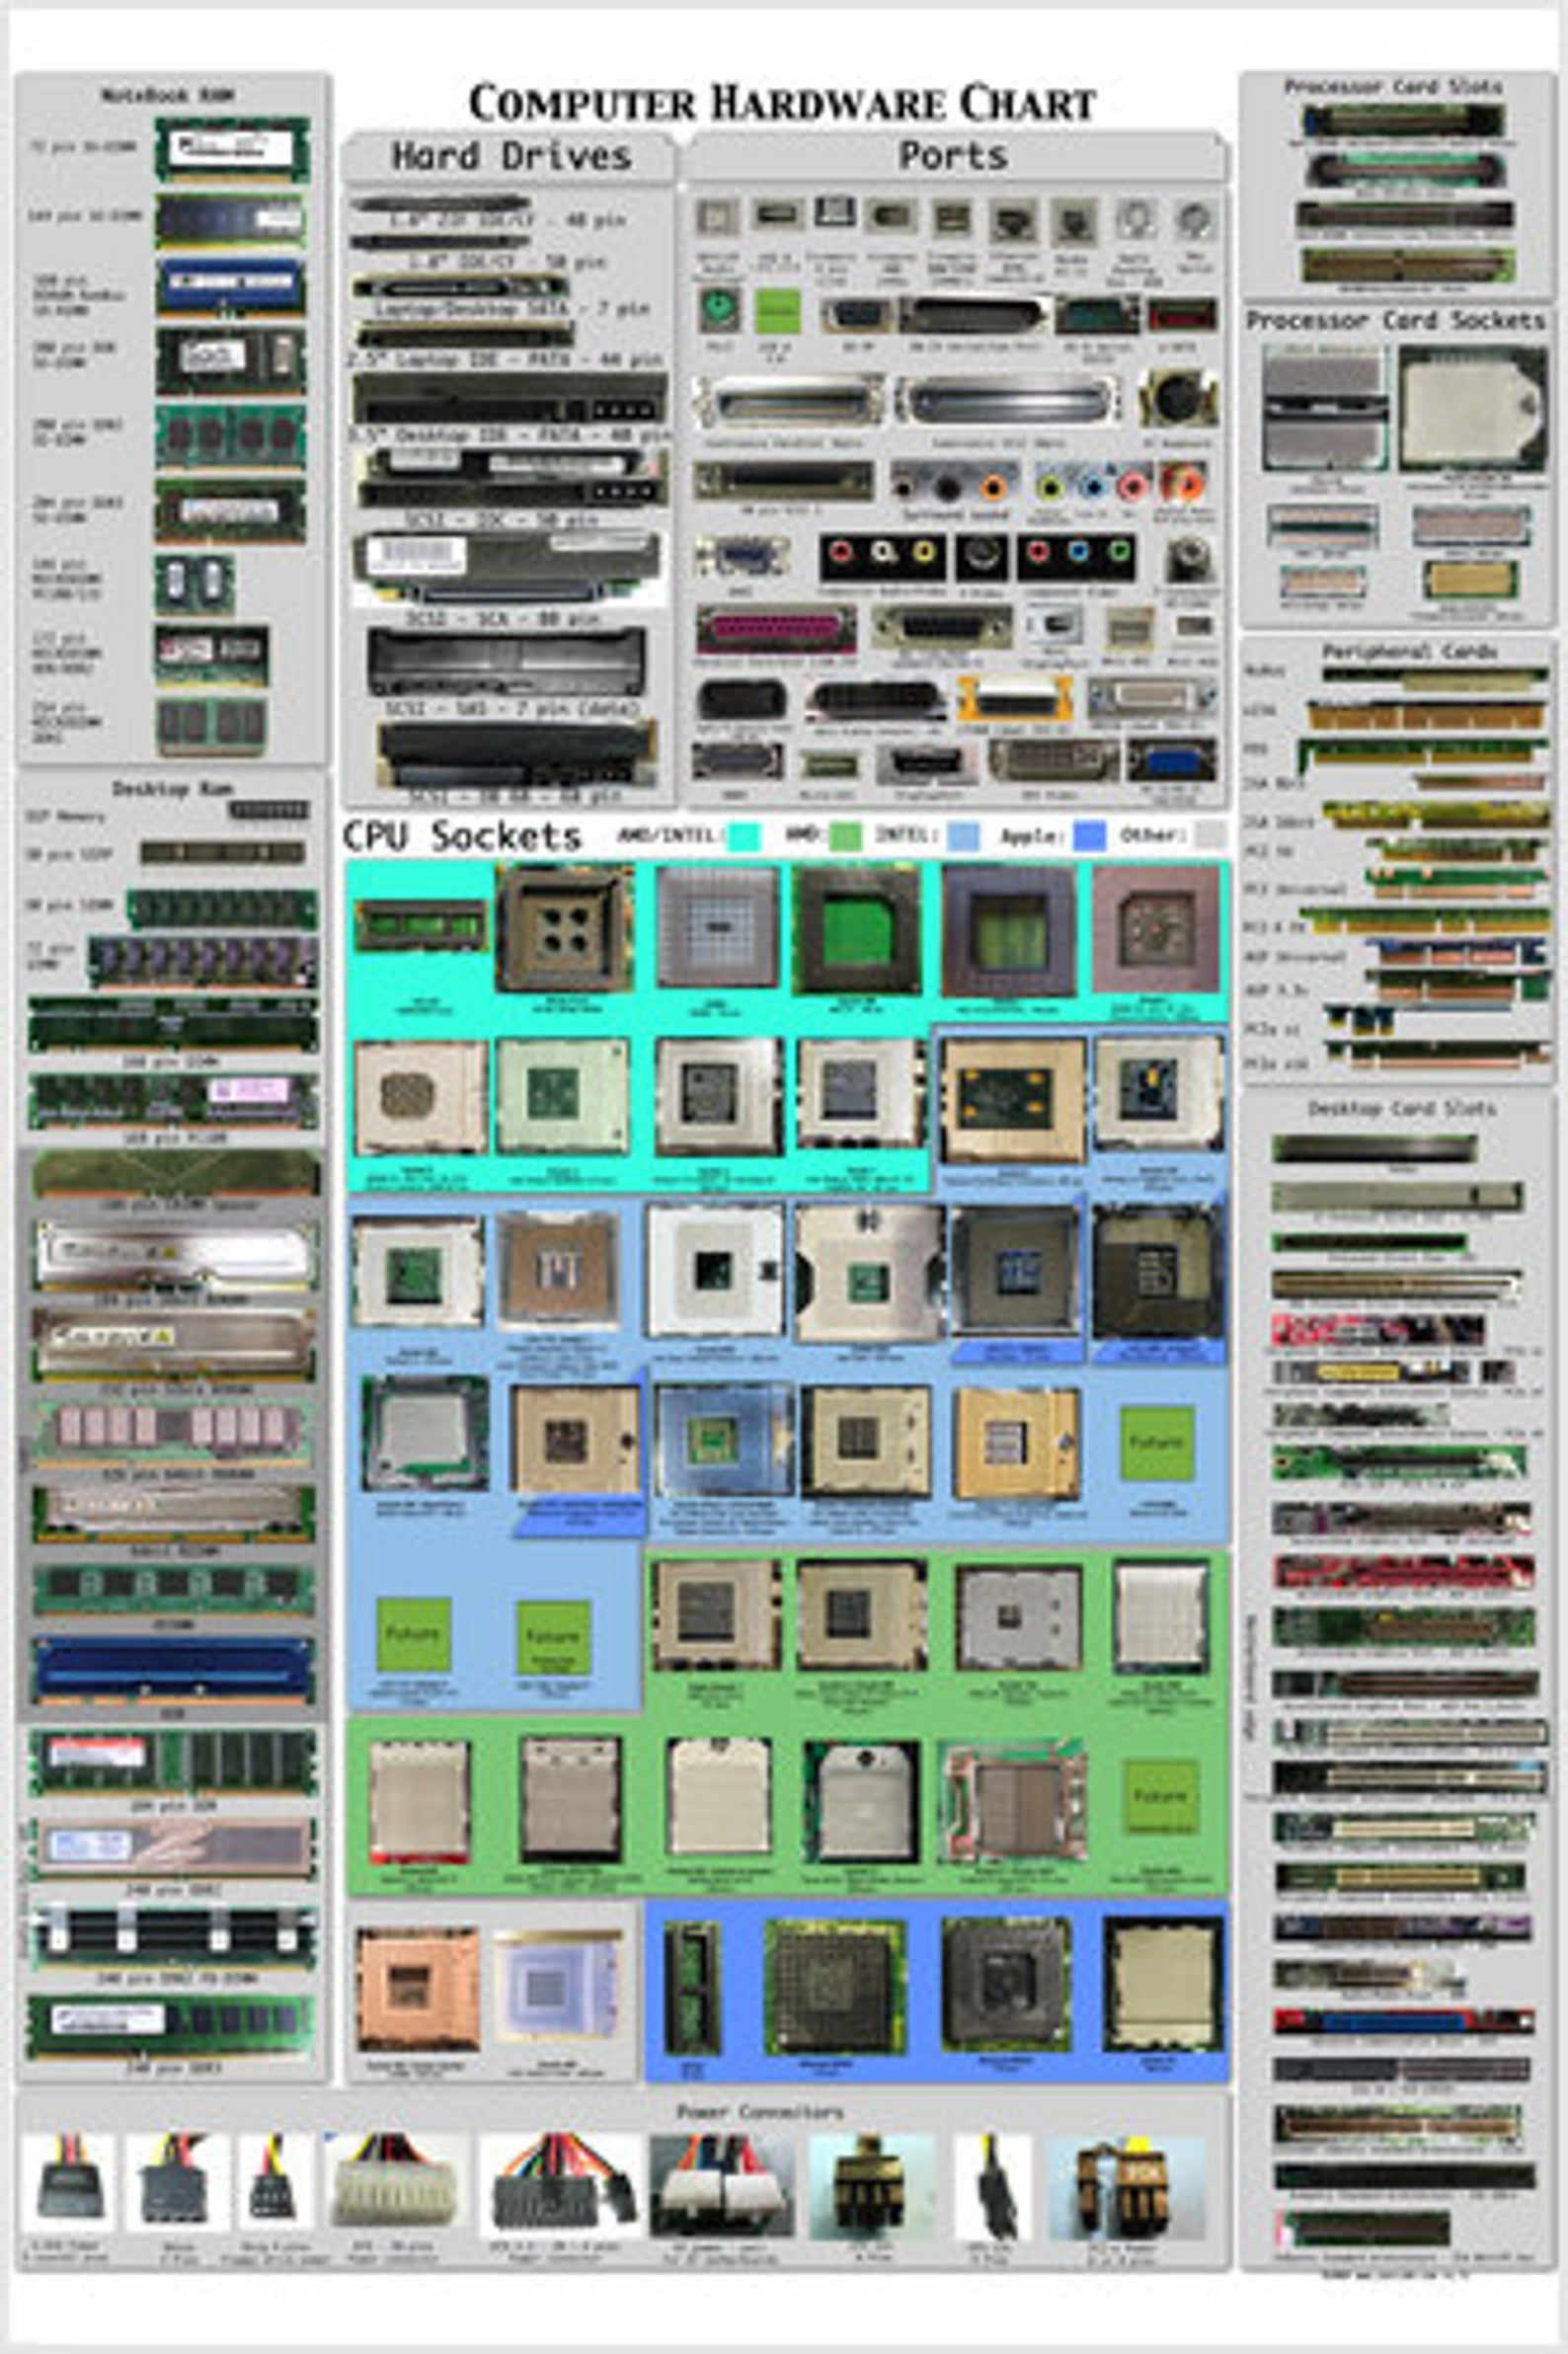 Computer Hardware Cheat Sheet Poster Detailed Educational